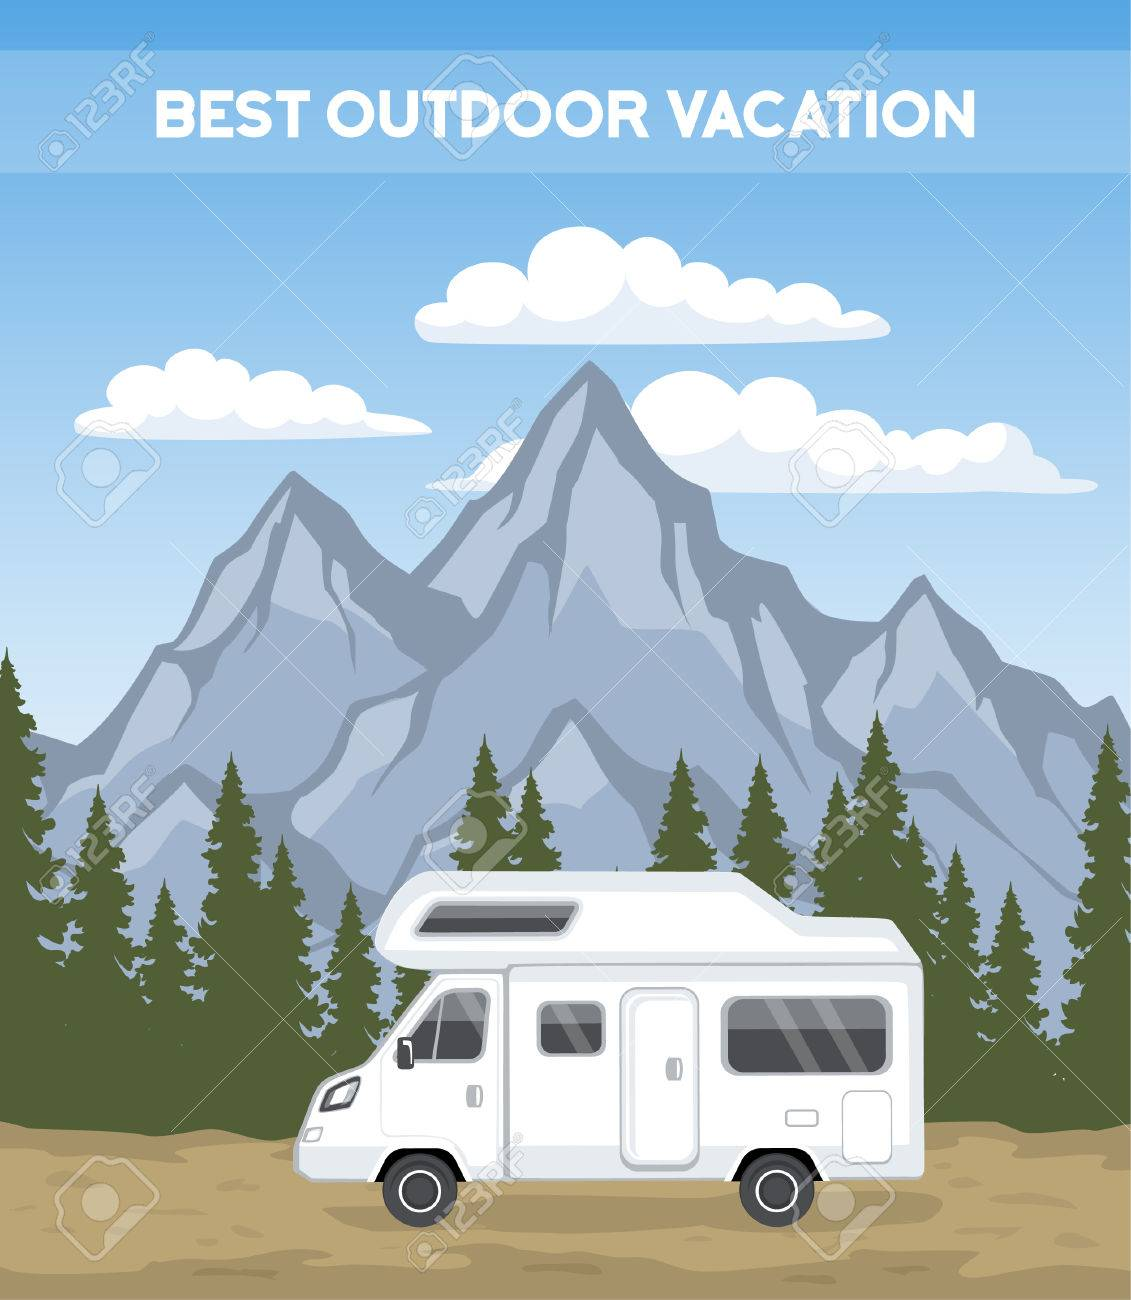 family vacation road trip poster template camper motorhome rv